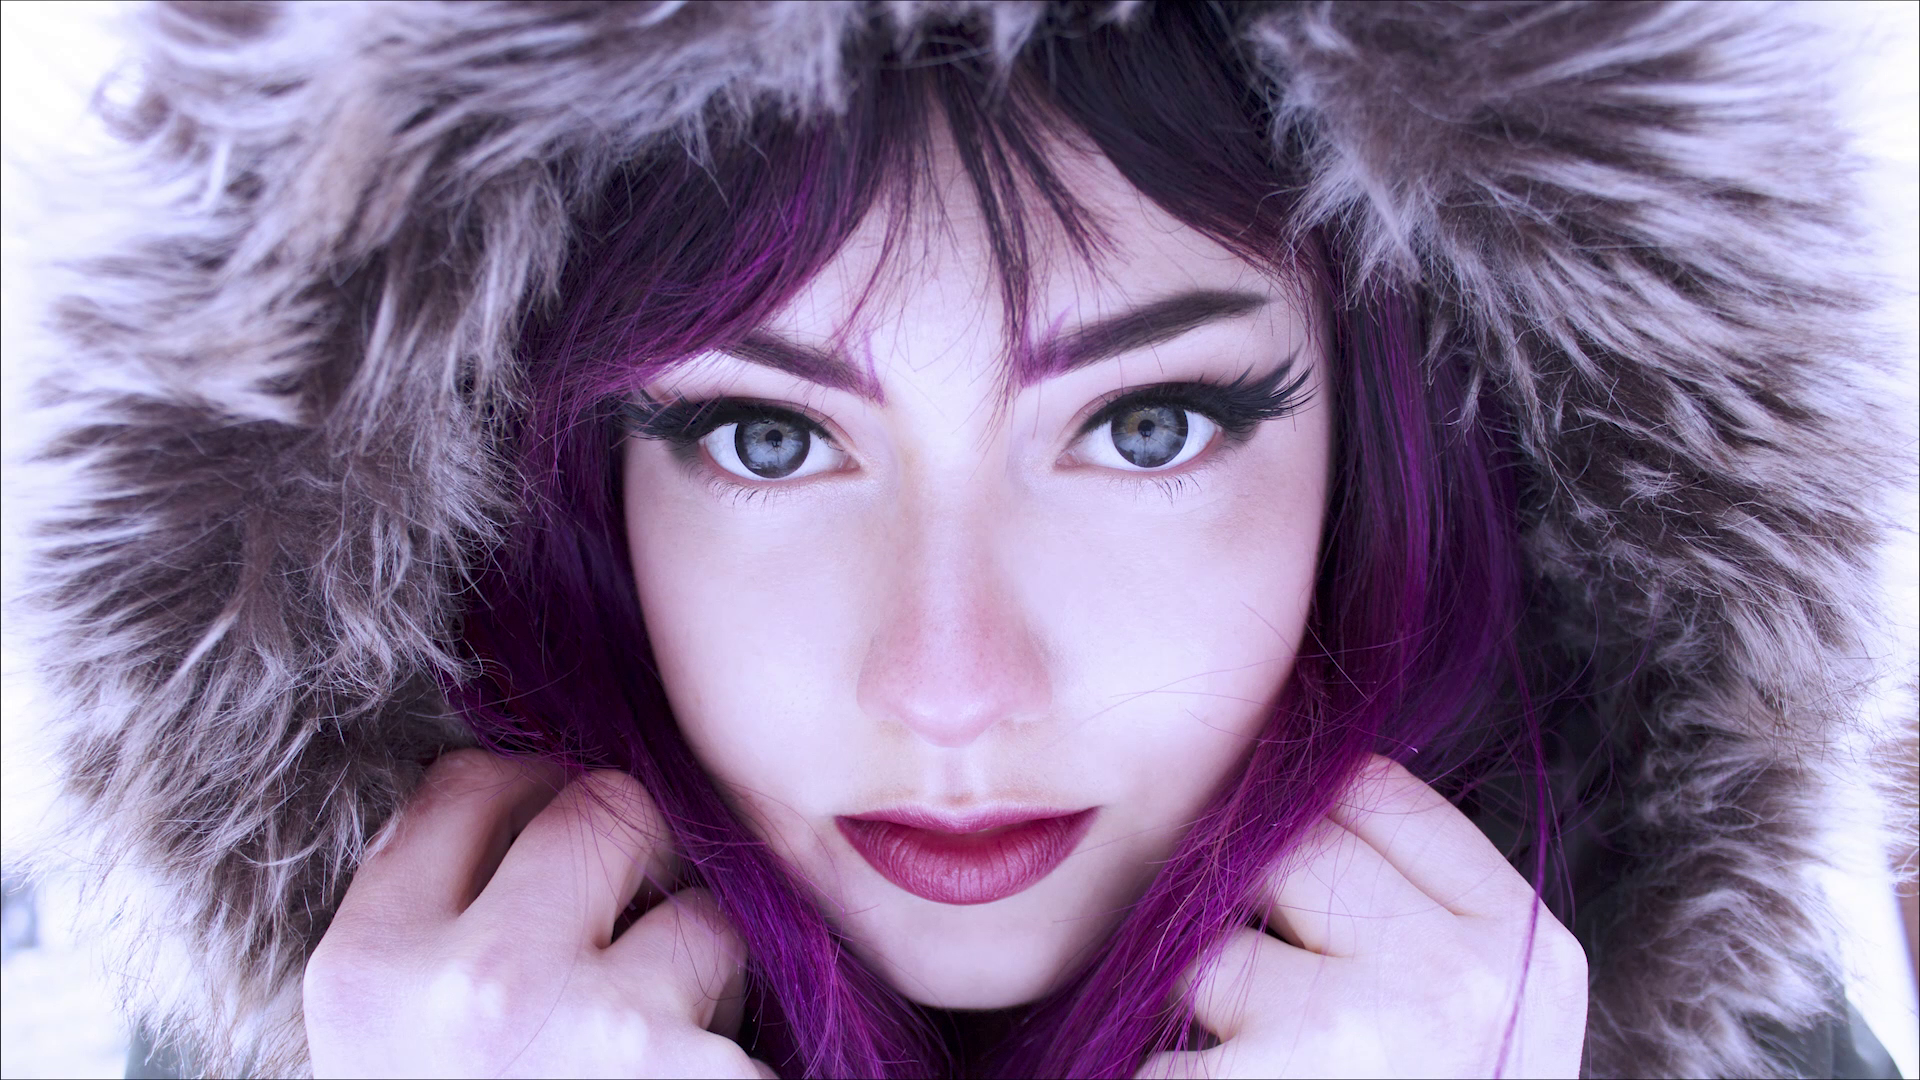 People 1920x1080 face women singer women outdoors blue eyes makeup lipstick Veela hoods violet hair